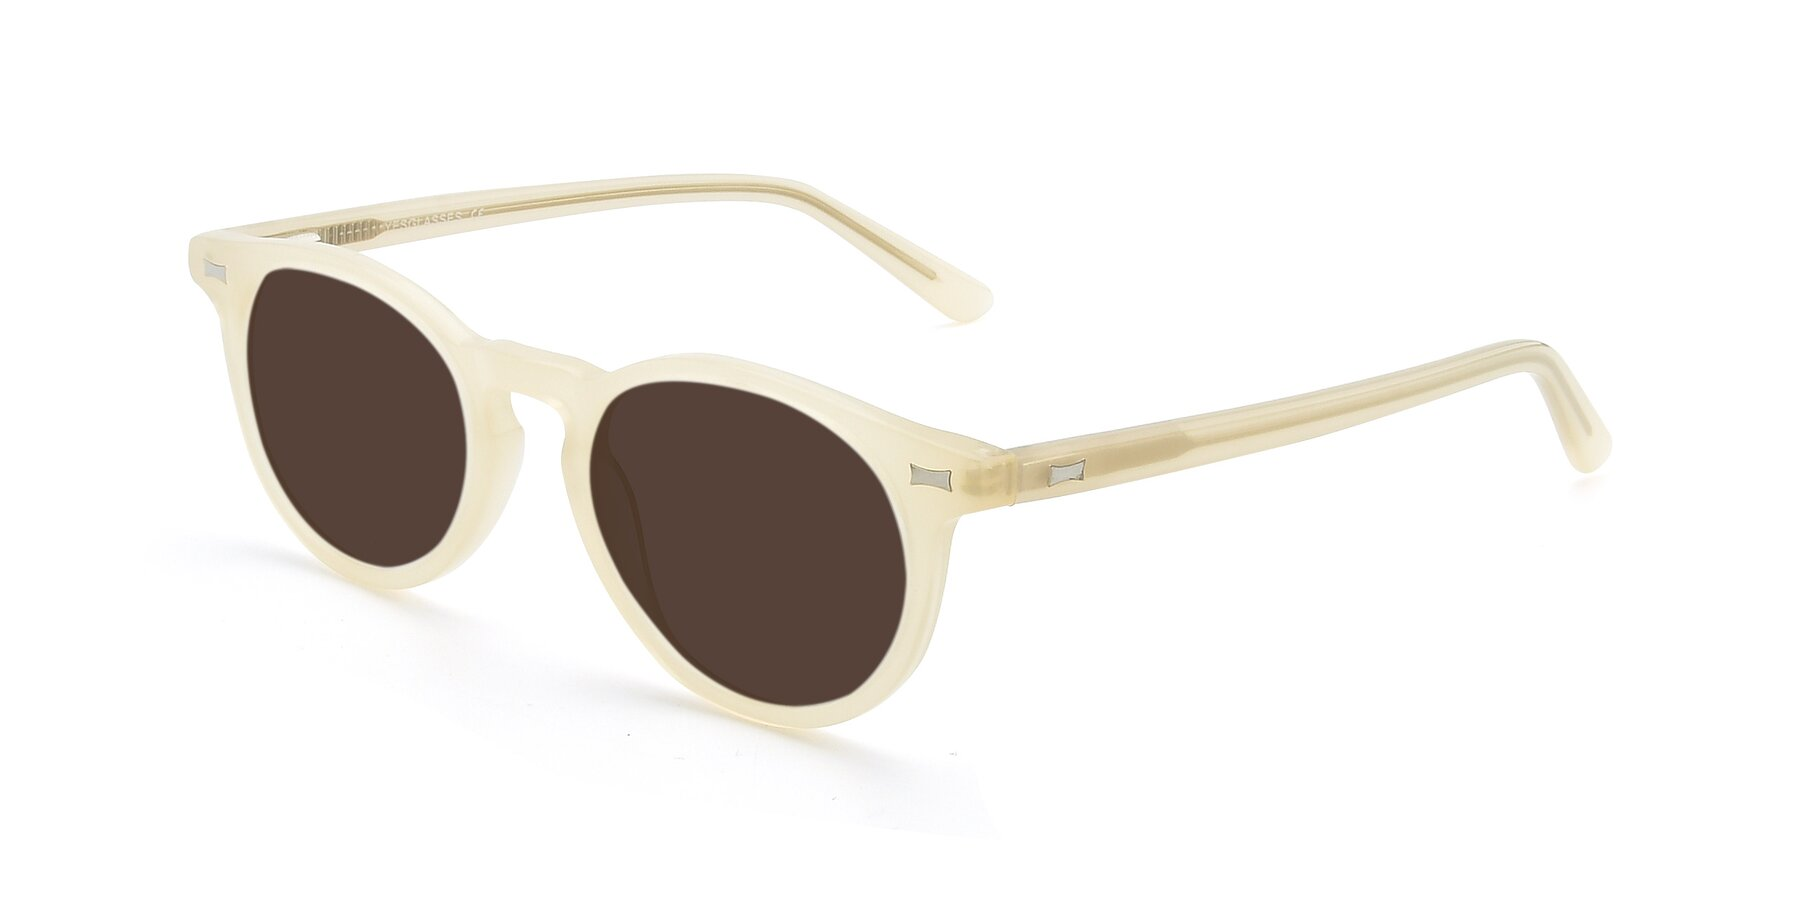 Angle of 17330 in Beige with Brown Tinted Lenses